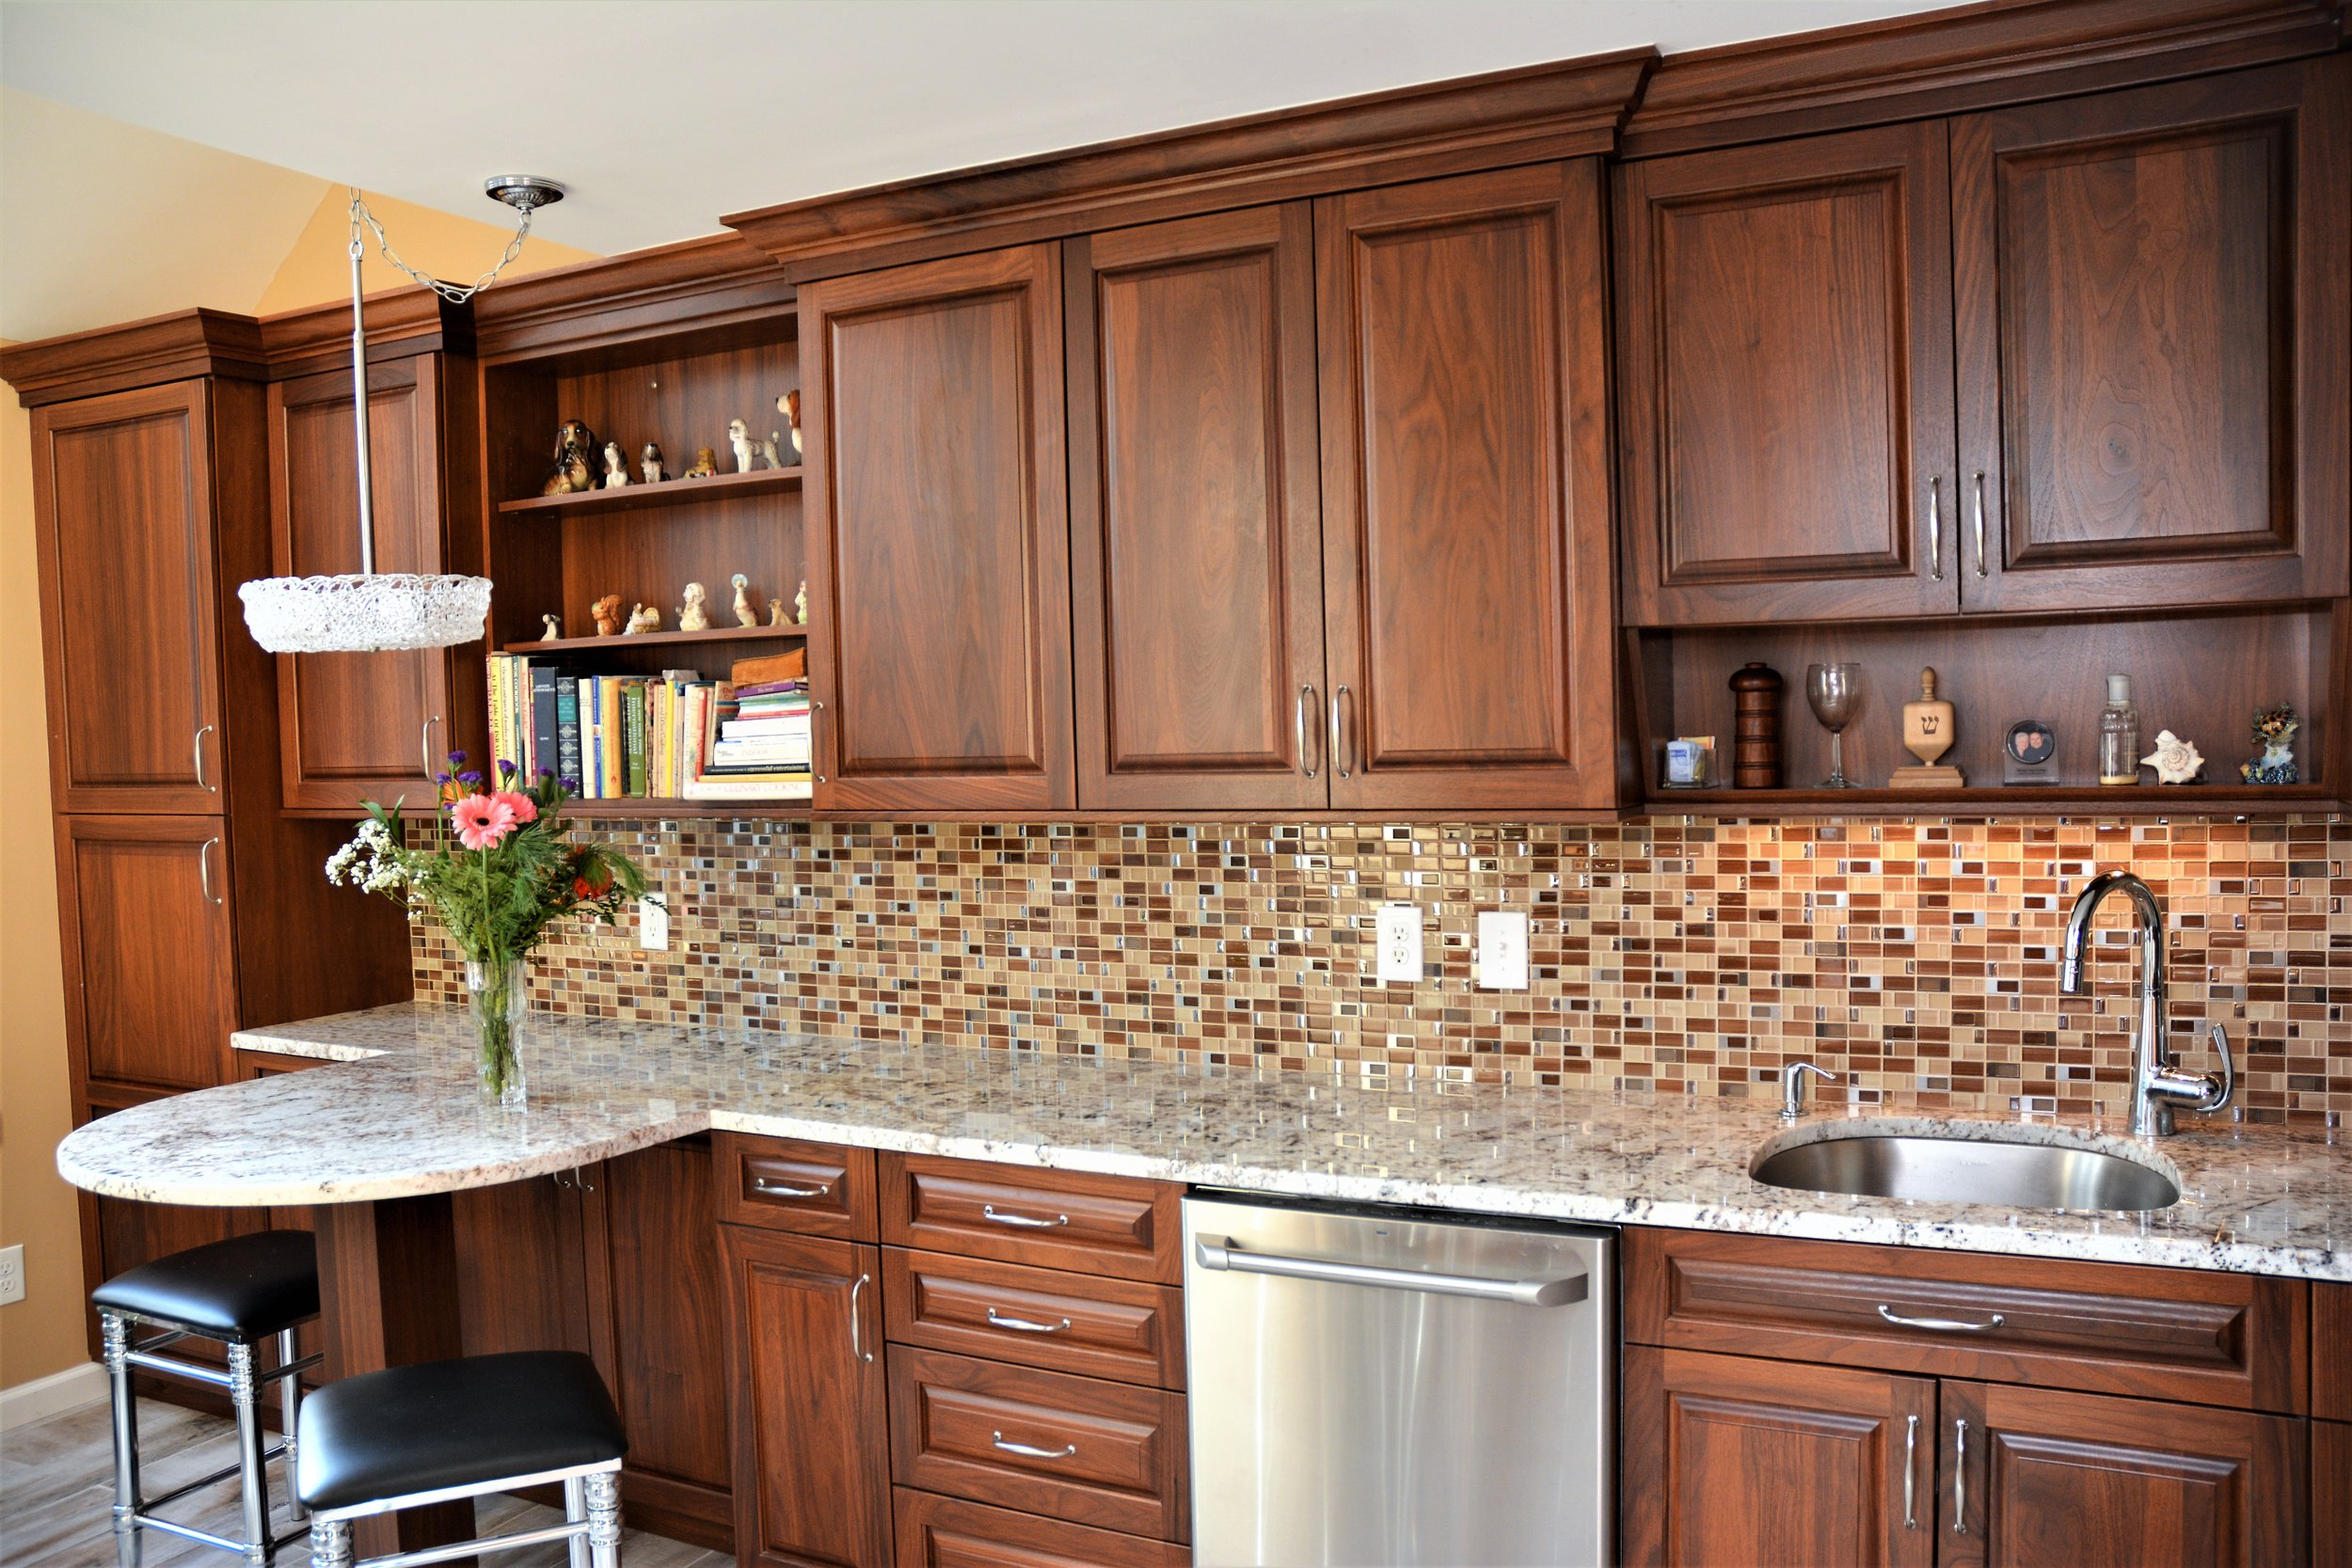 Galley Gorgeous - Arthur has done 3 kitchen remodelings for my family over 20 years. When I purchased my condo I didn't even think about comparison shopping and contacted Arthur. I left the design & layout to him & again have an eye-catching kitchen. Arthur lets you take the lead in picking tile, back splash etc to go with the cabinets and gives you his view on your picks. My only regret is that he is moving his business out of my area so he might not be able to do my next kitchen.-Lisa S.